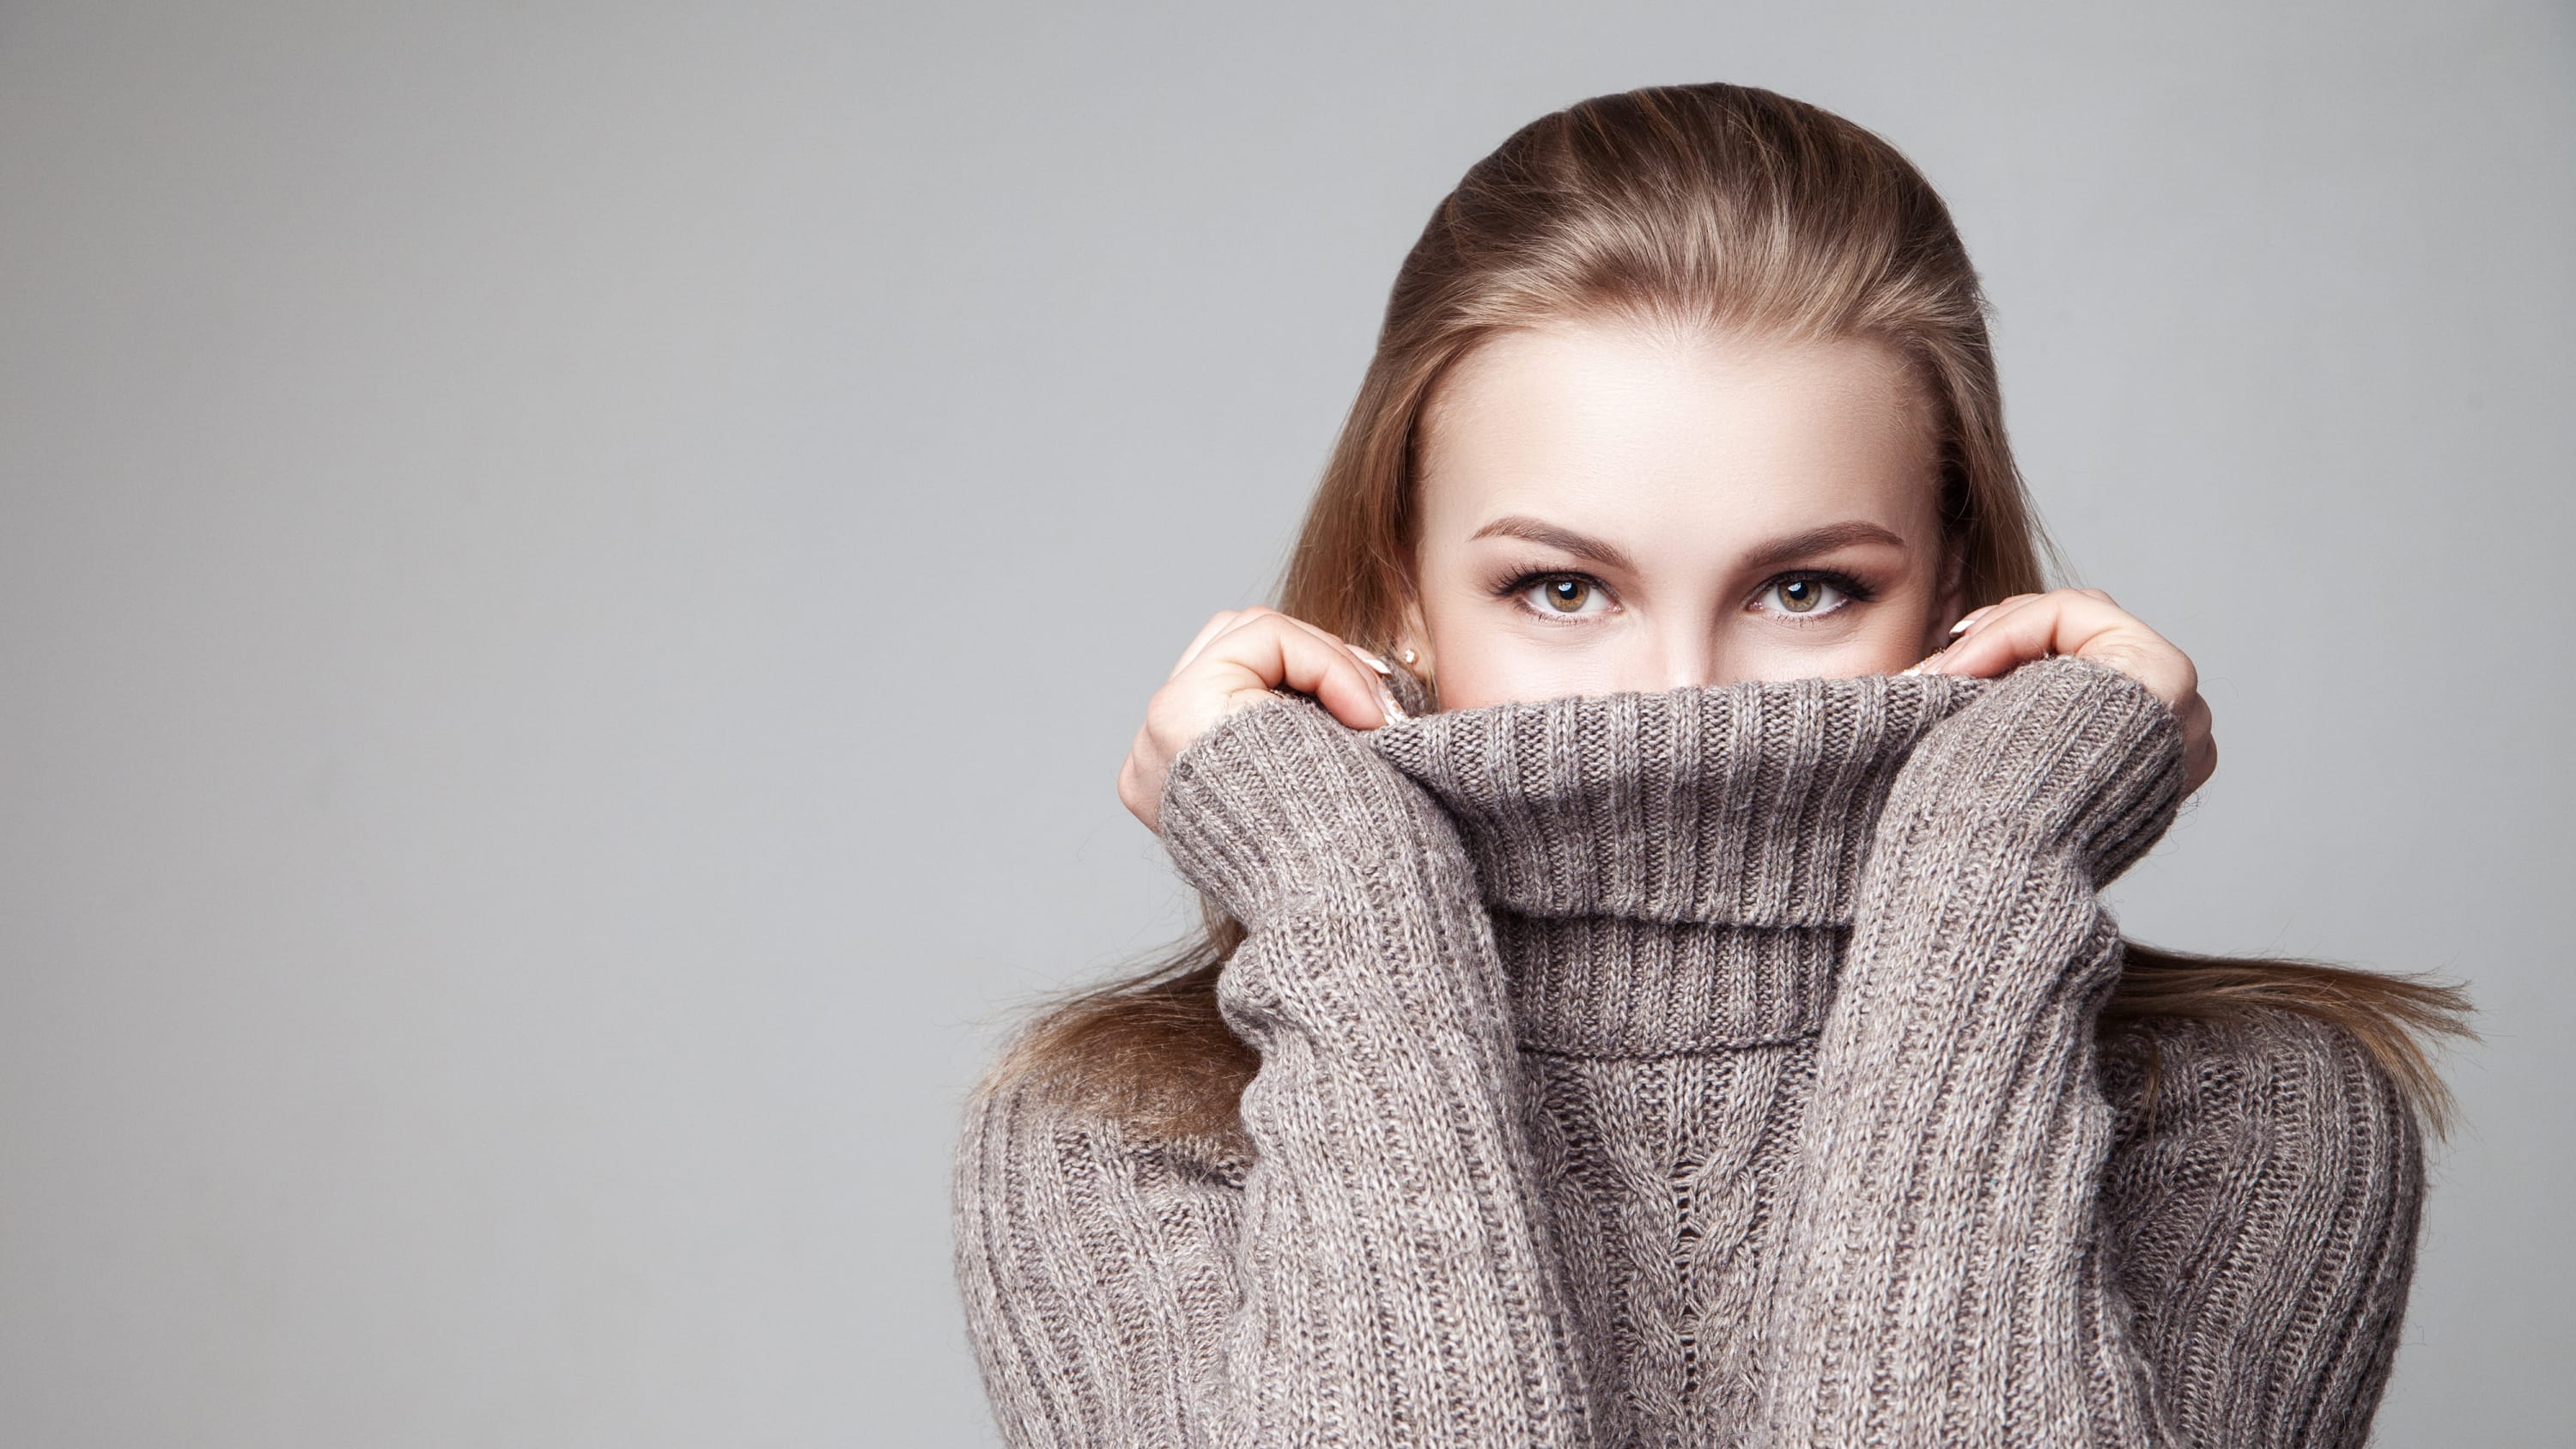 A woman with psoriasis pulling her turtle neck sweater up past her chin.